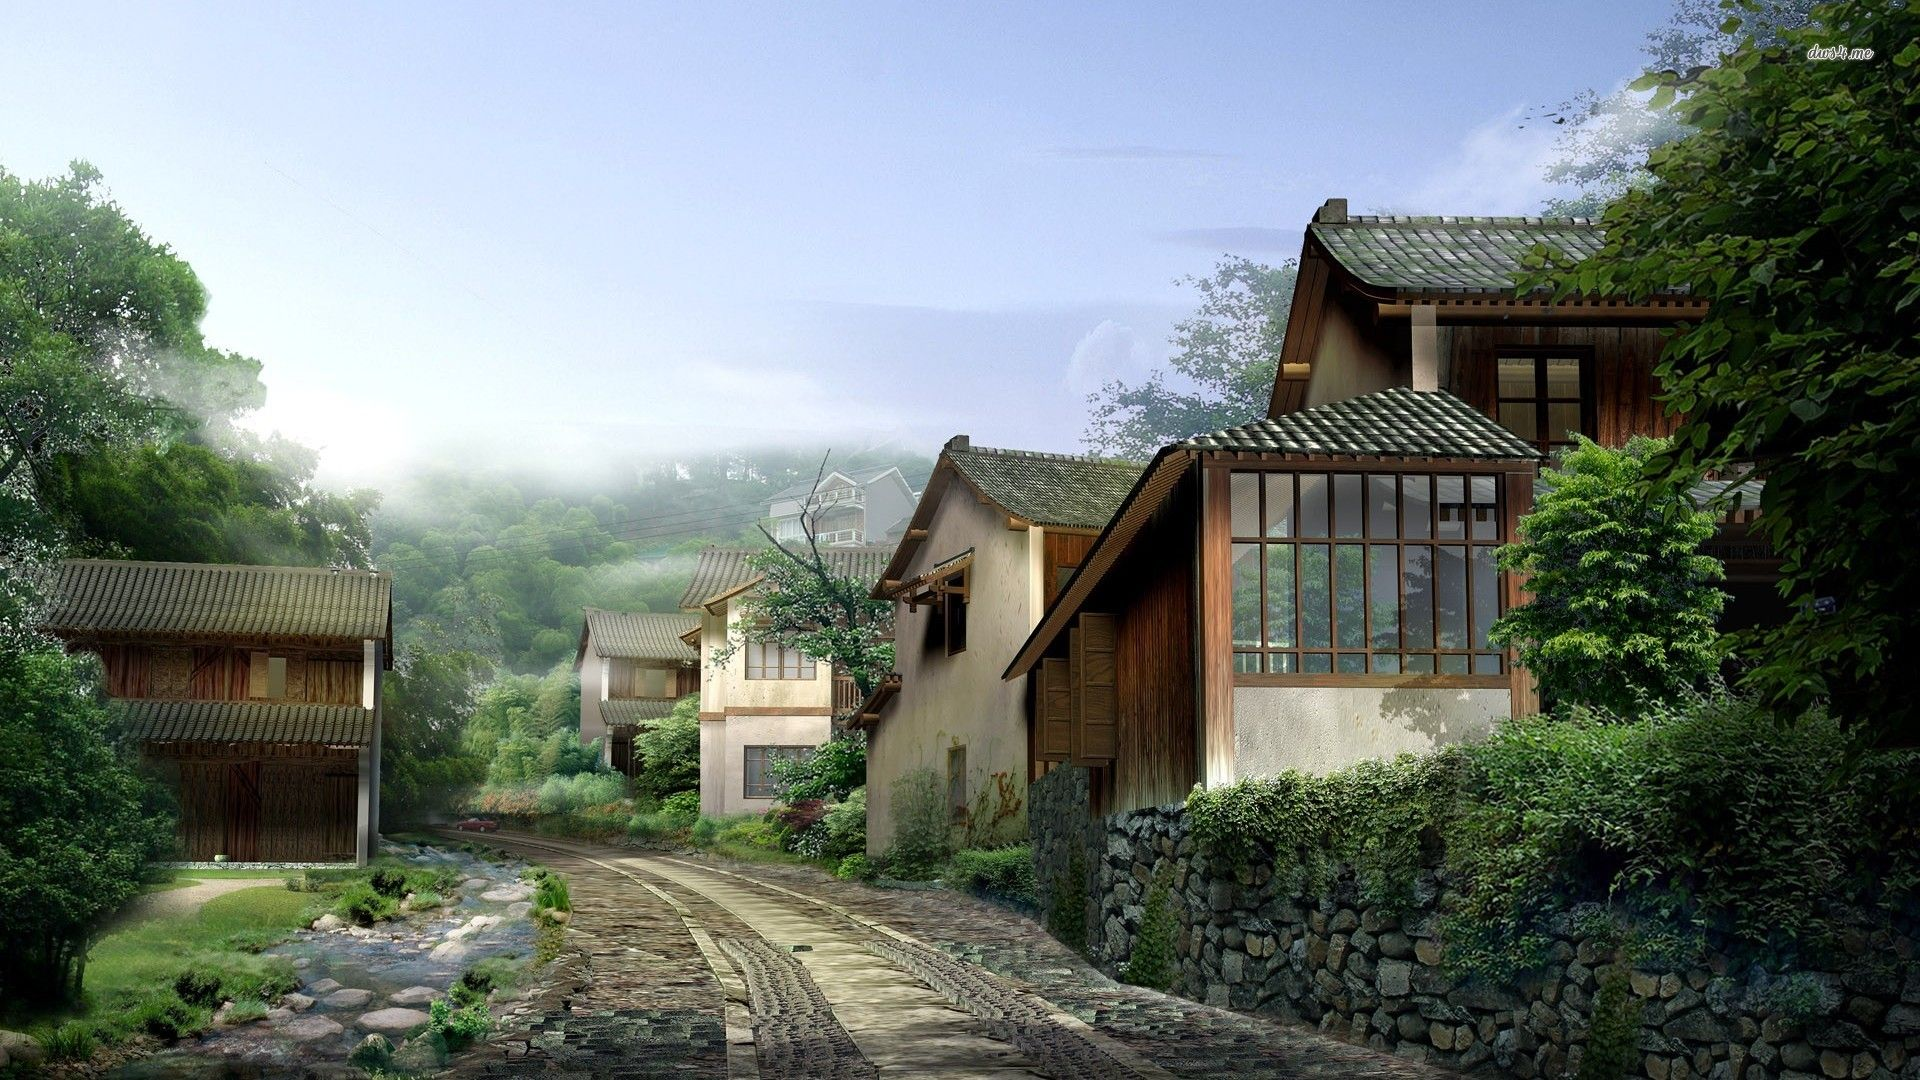 Rain In Chinese Village Wallpaper Countryside Wallpaper House Country Cottage